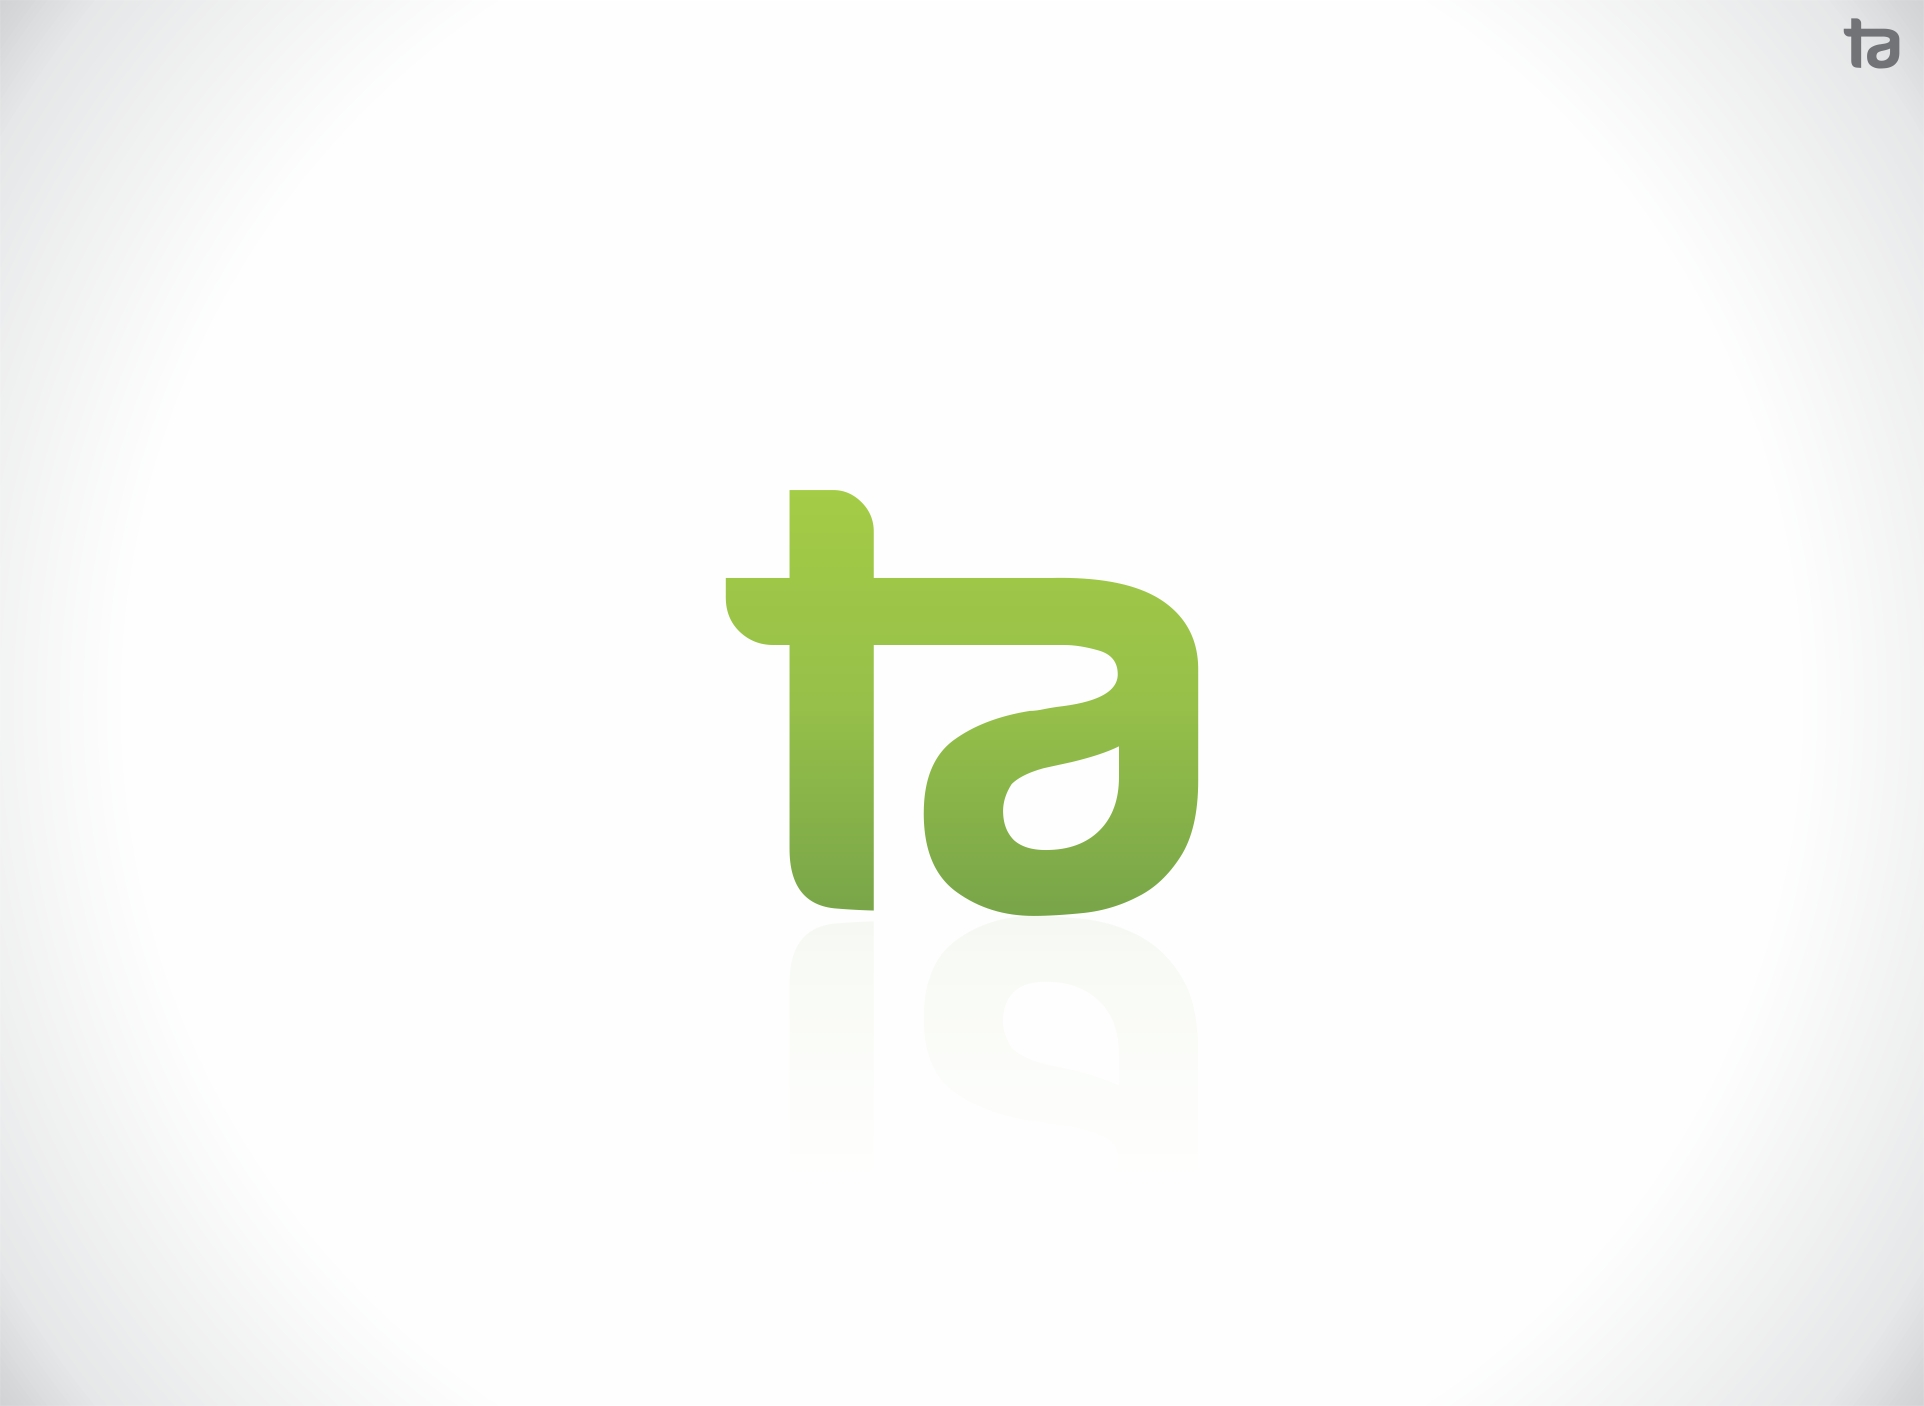 Logo Design by dandor - Entry No. 69 in the Logo Design Contest Imaginative Logo Design for TAYA.